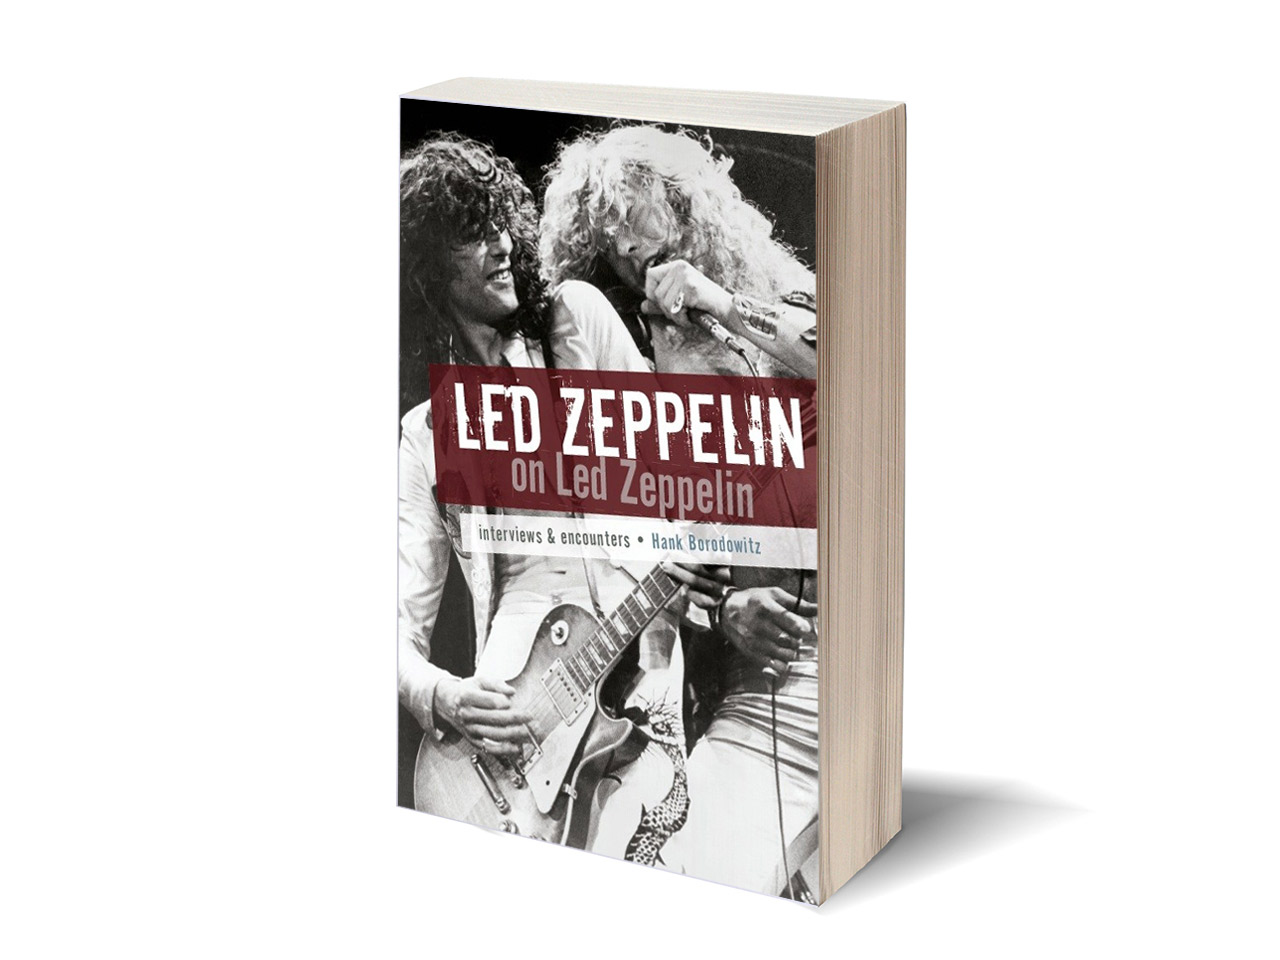 the success story of the hard rock band led zeppelin They have their detractors, sure, but it's hard to deny that led zeppelin were one of the greatest rock bands in history — and also one of the all-time greatest live acts, which doesn't .